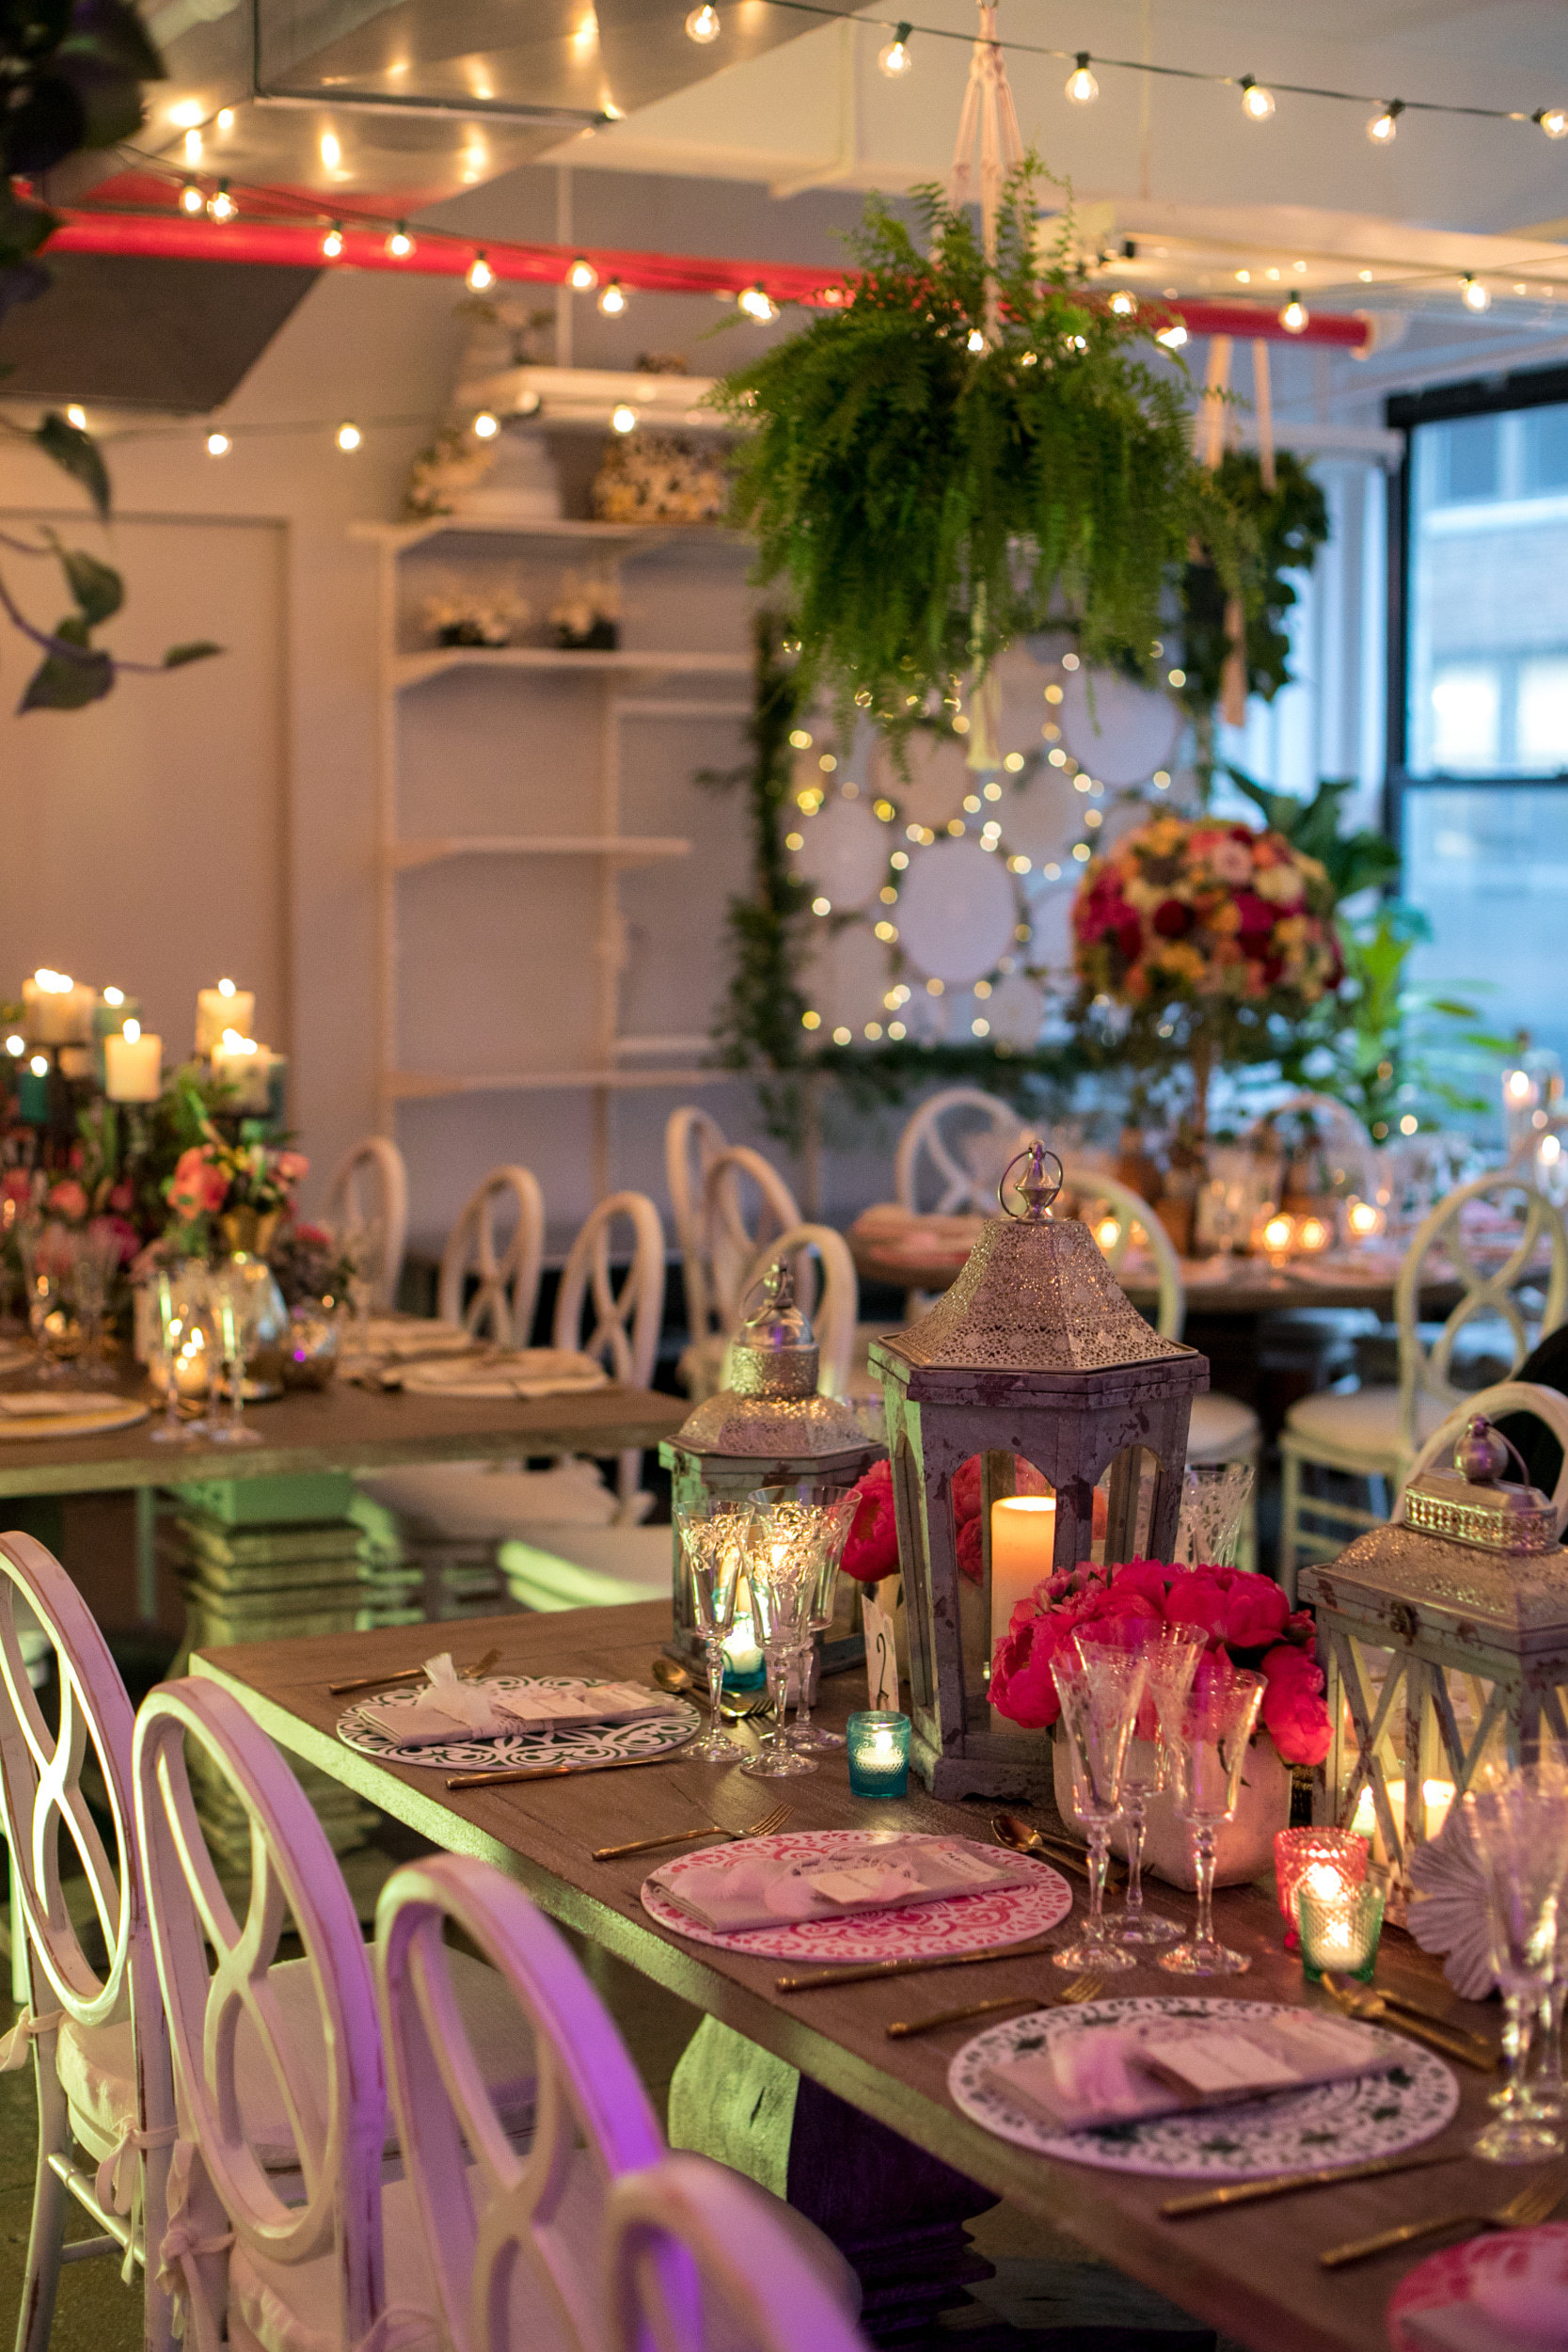 PartySlate's Exclusive Boho Chic Dinner Party for Top New York Event Planners - PartySlate